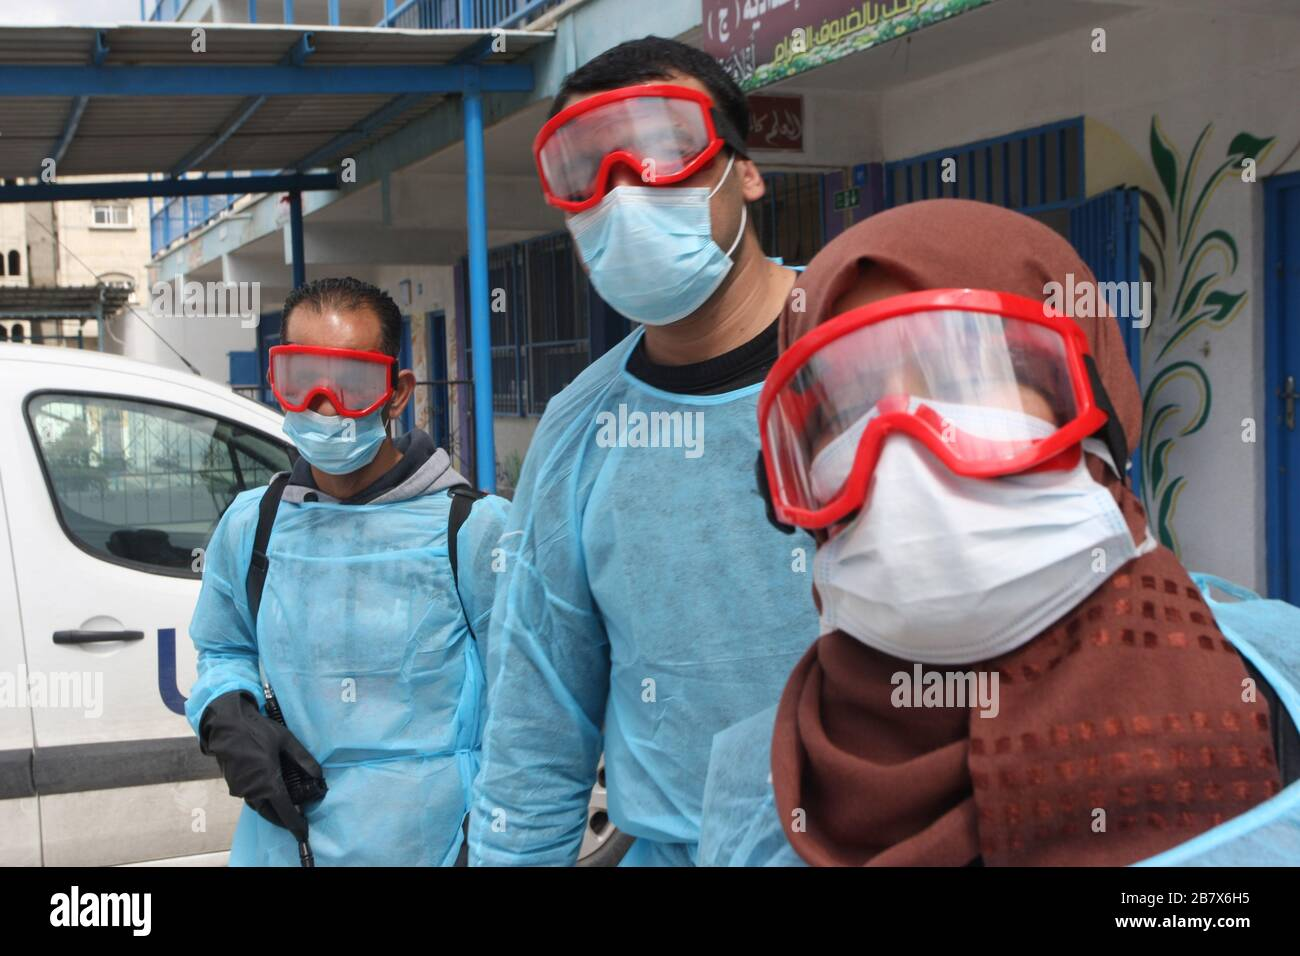 Gaza, Palestine. 18th Mar, 2020. Palestinian health workers wearing a protective facemasks are pictured in the courtyard of a United Nations Relief and Works Agency for Palestinian Refugees (UNRWA) school at Khan Younis refugee camp in southern Gaza on Wednesday, March 18, 2020, as preparations are underway to receive, examine and isolate potential victims of the Covid-19 coronavirus. So far Gaza have not confirmed any infections. But doctors in many cases believe the virus has arrived and fear that a lack of disease surveillance systems - shortages of tests, basic supplies and properly traine Stock Photo